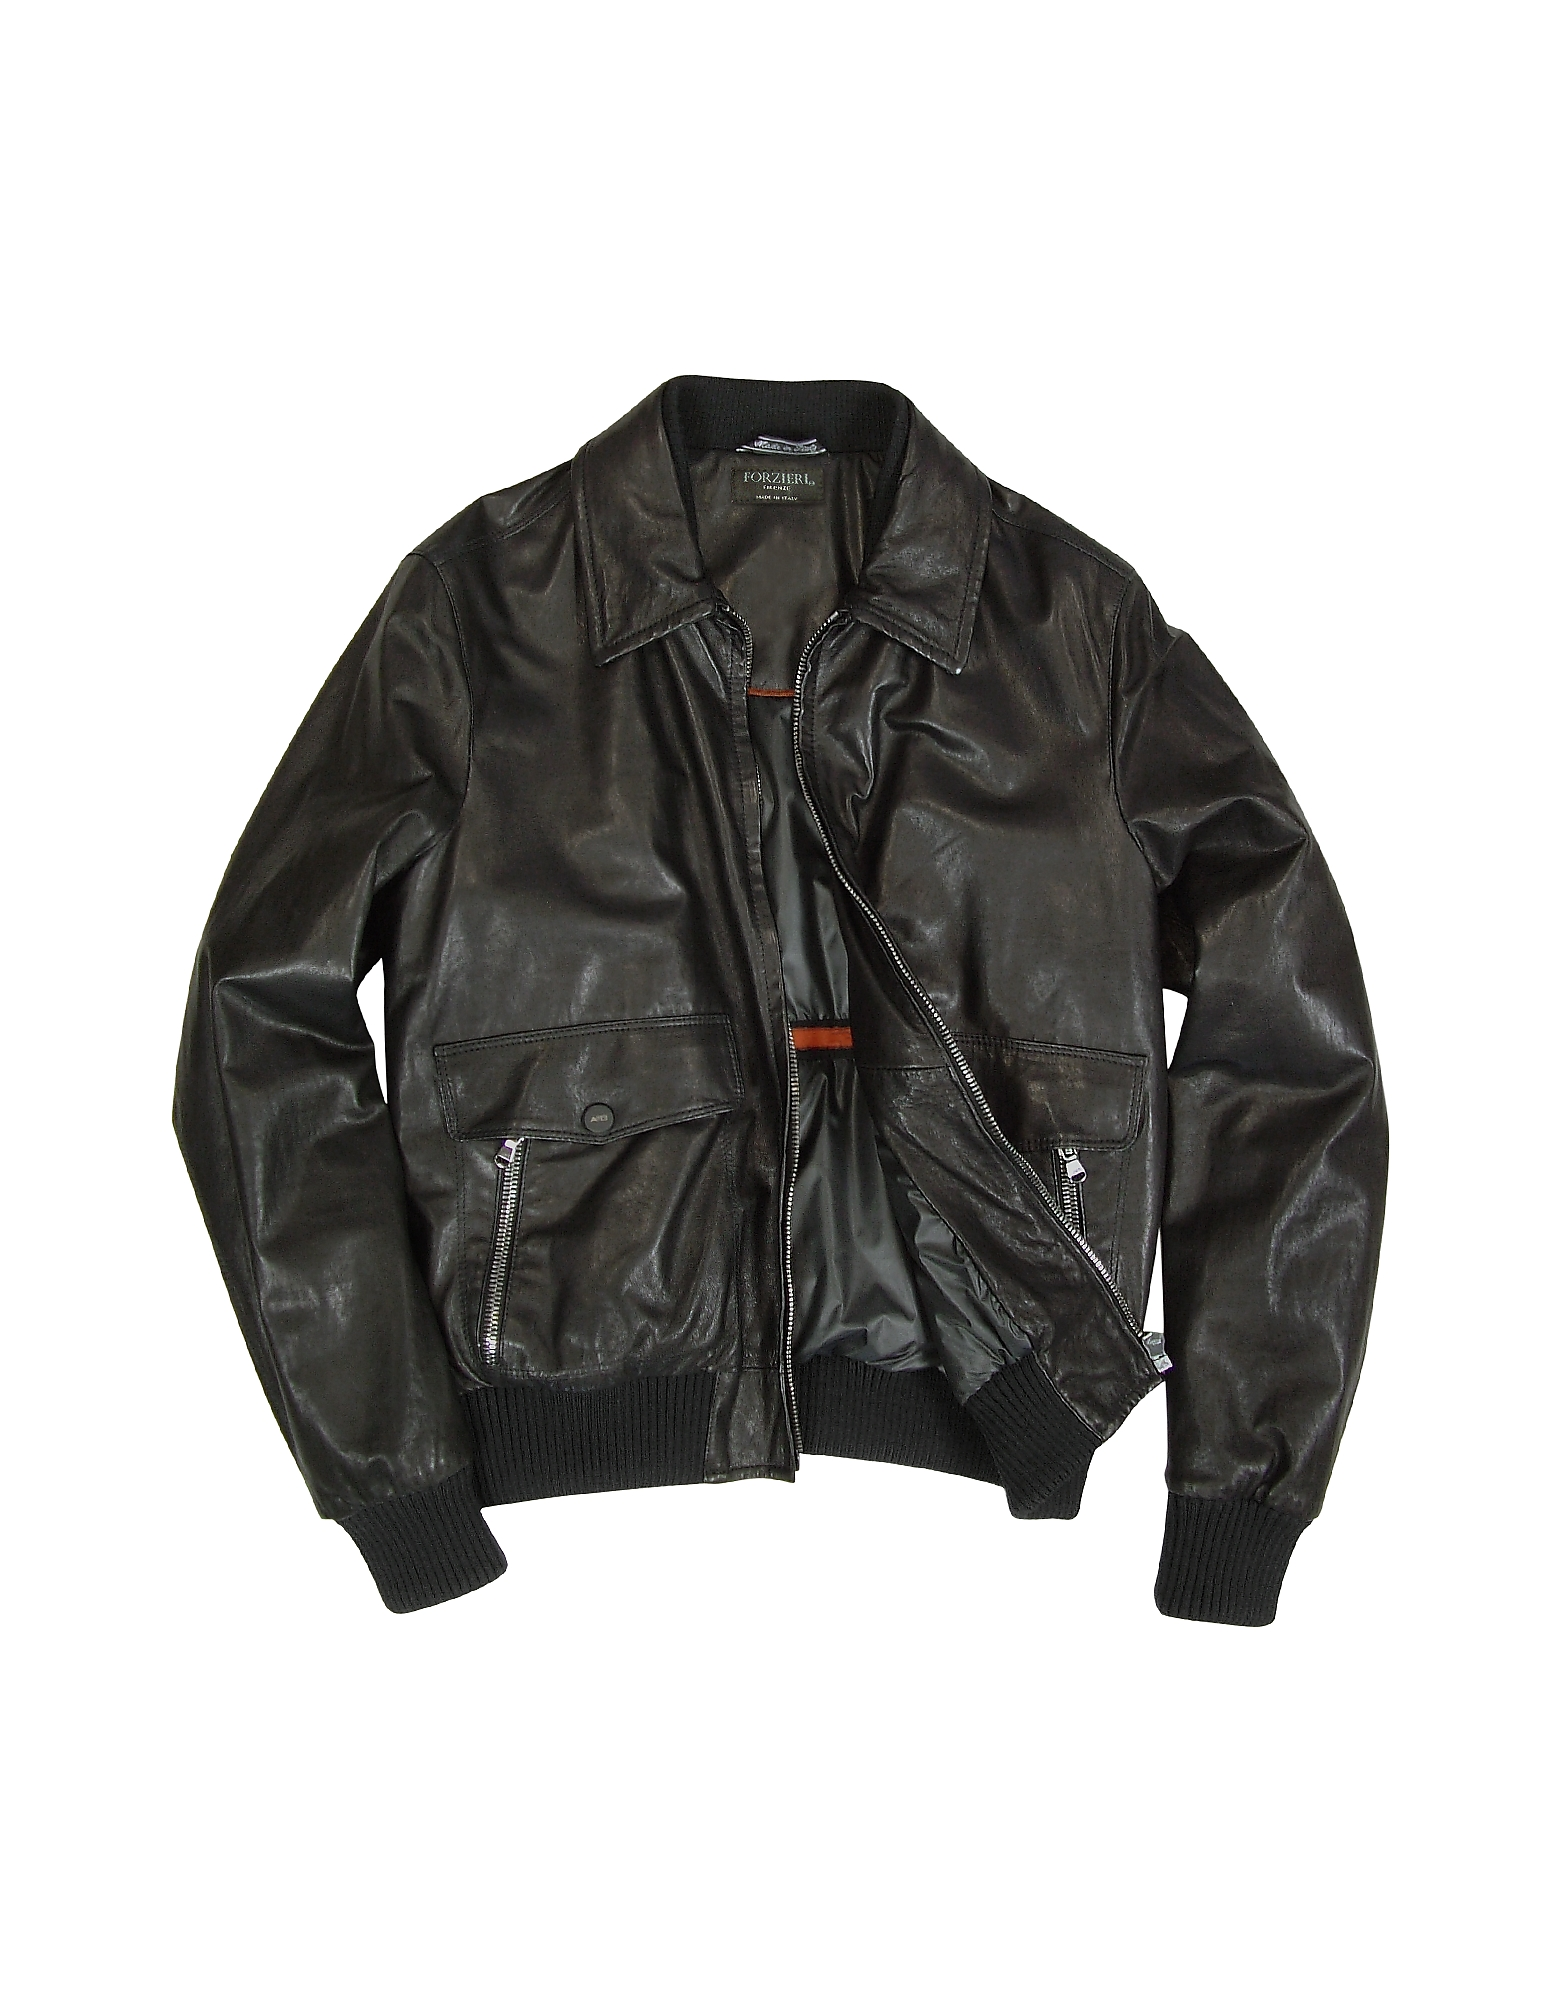 Men's Black Leather Motorcycle Jacket от Forzieri.com INT